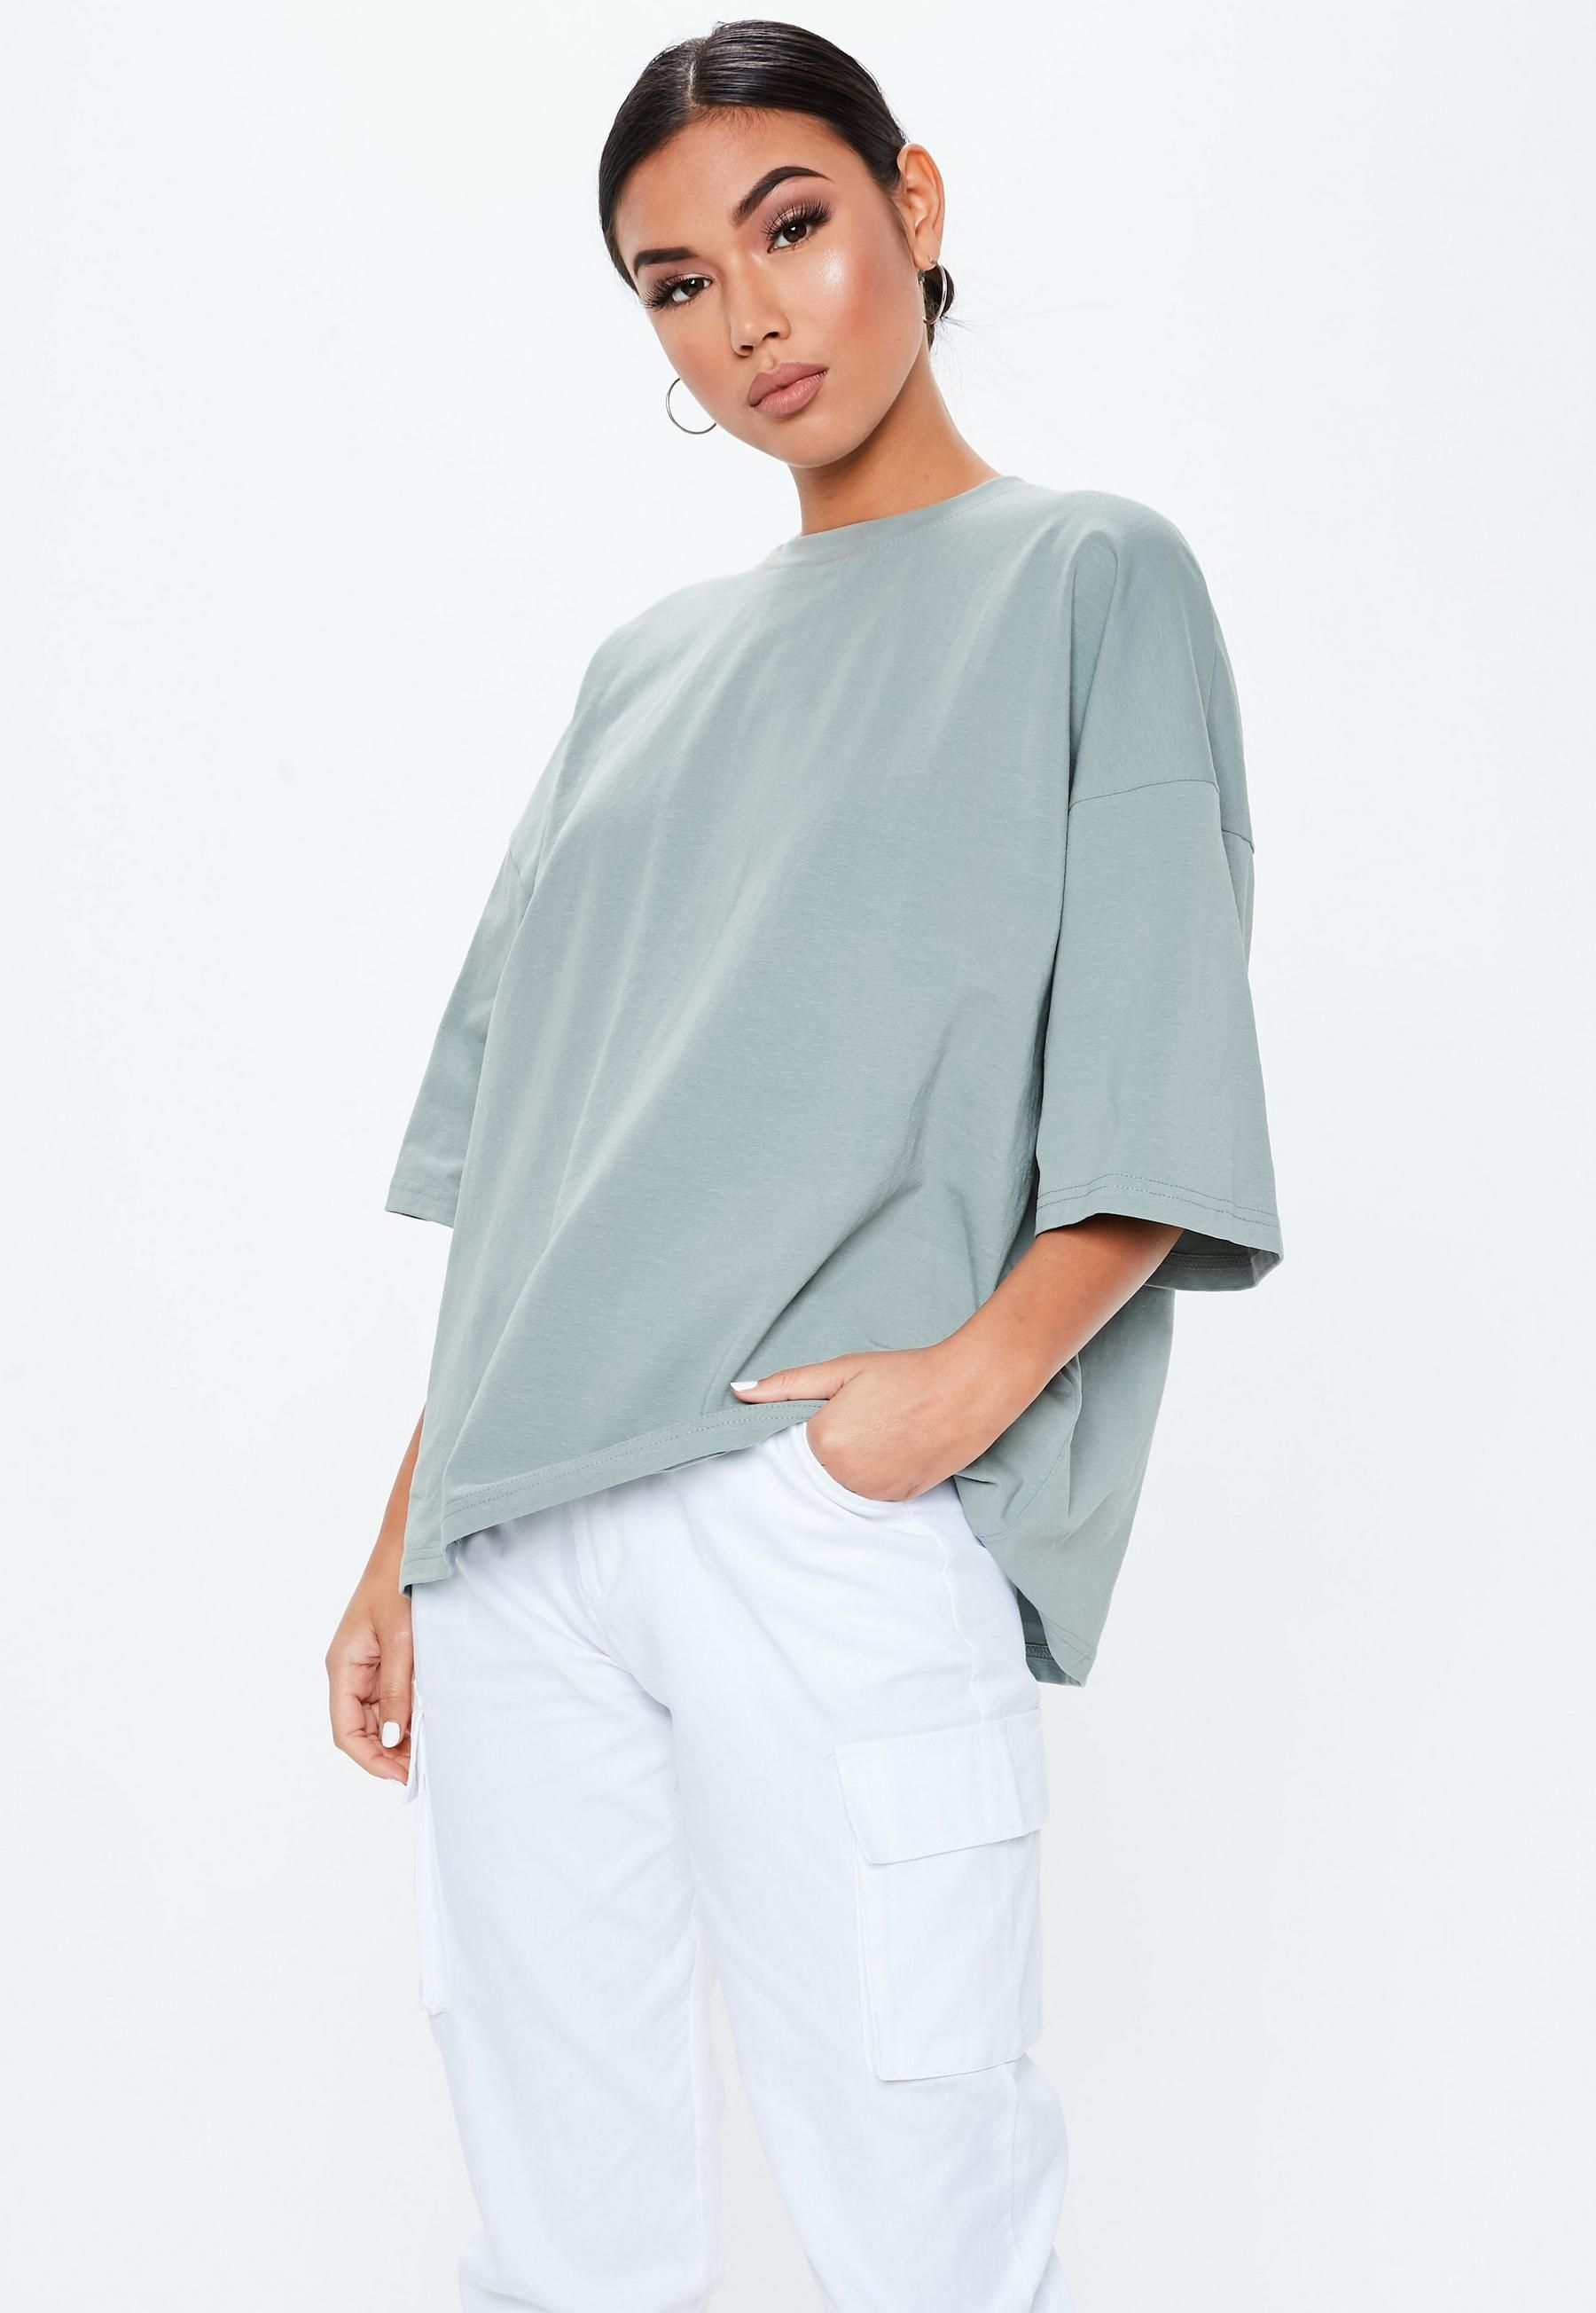 1f0be0a1b Grey Drop Shoulder Oversized T Shirt   Missguided   MISSGUIDED in ...